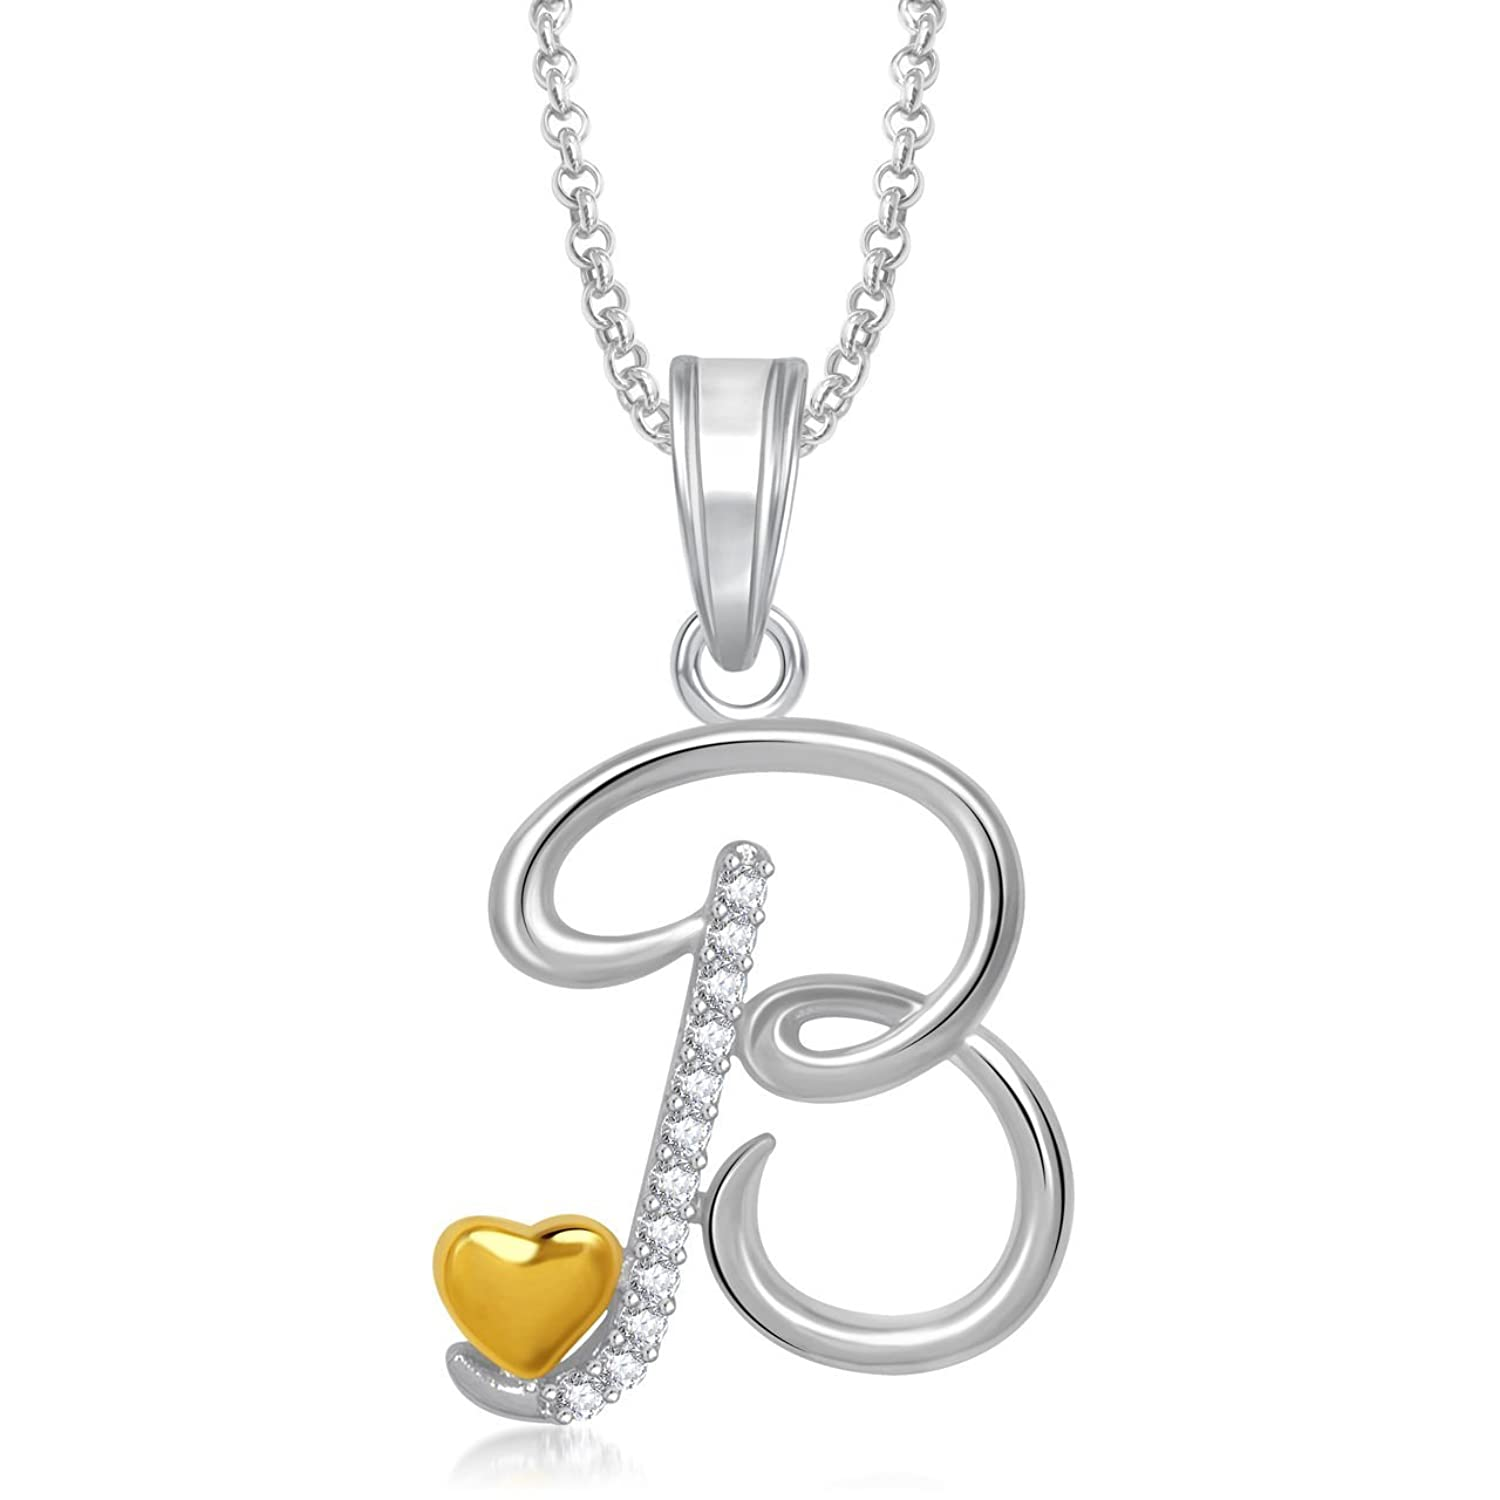 jewellery in s set catalog diamond pdp jewmeenaz men heart letter gold male pendant buy images with and m alphabet com chain plated american women paytm meenaz valentine lockets for gifts cz love locket product